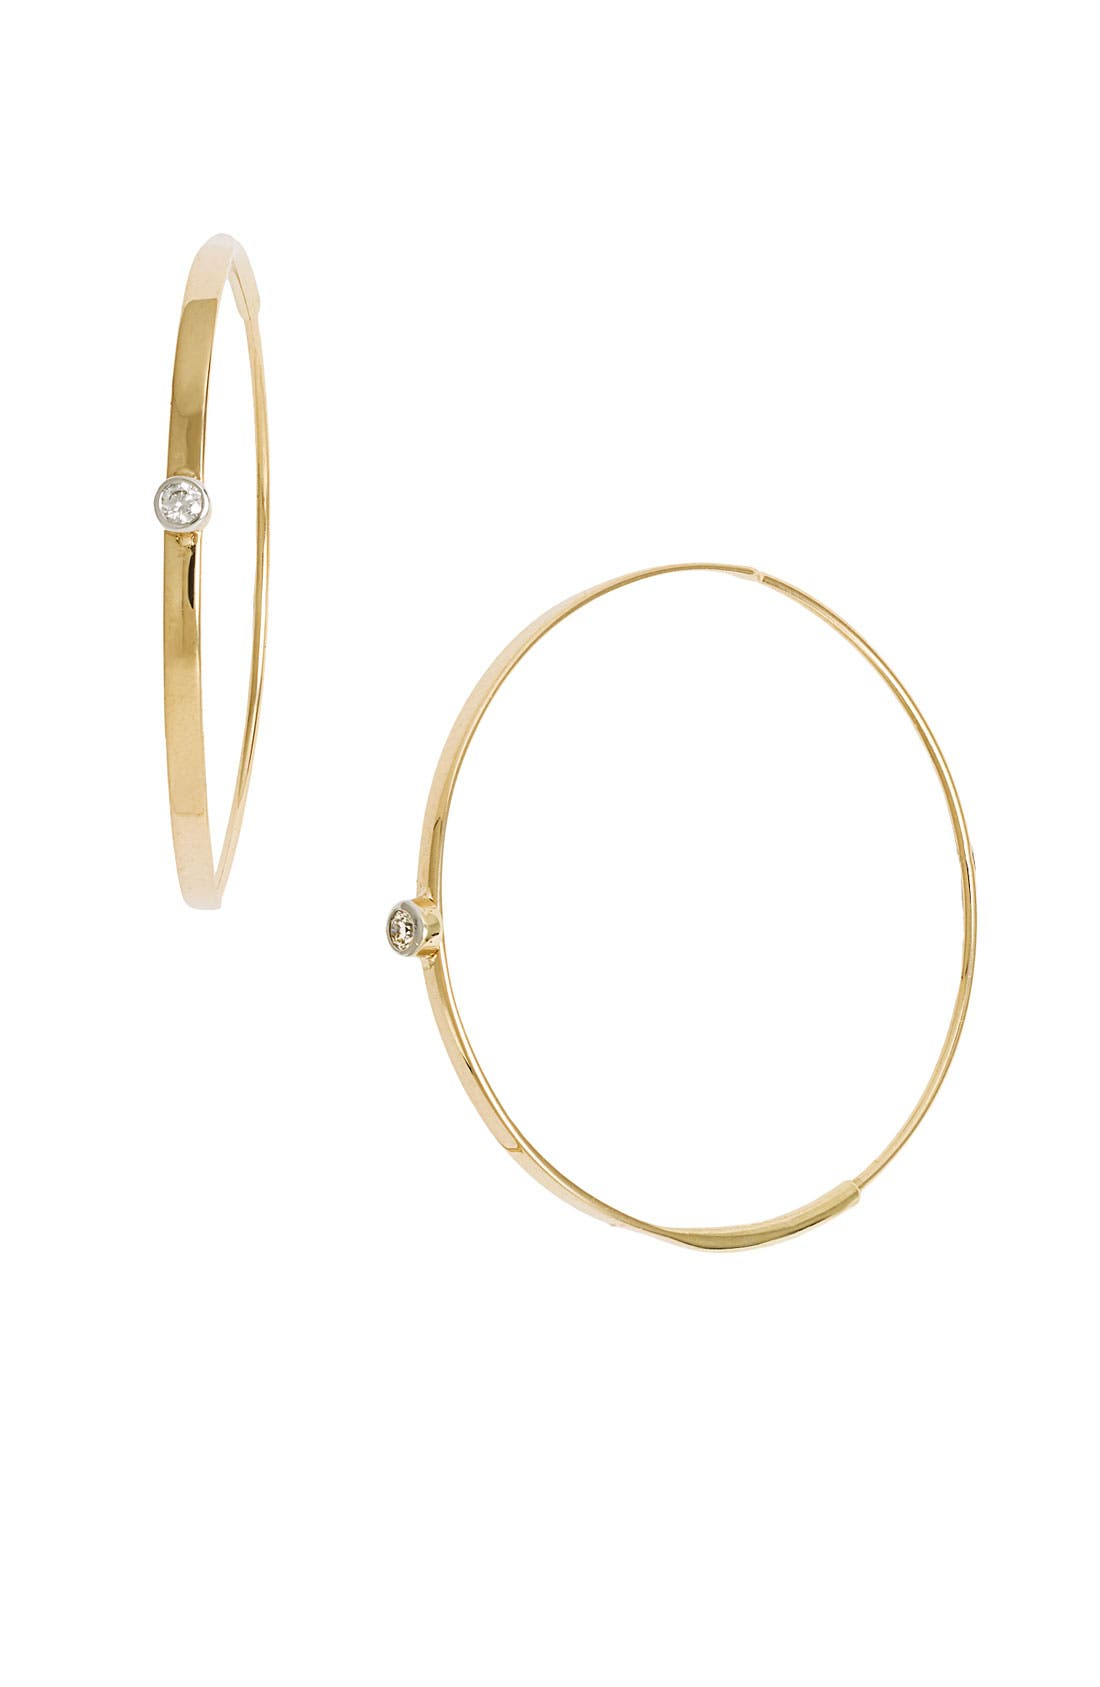 Alternate Image 1 Selected - Lana Jewelry 'Small Flat Magic' Diamond Hoop Earrings